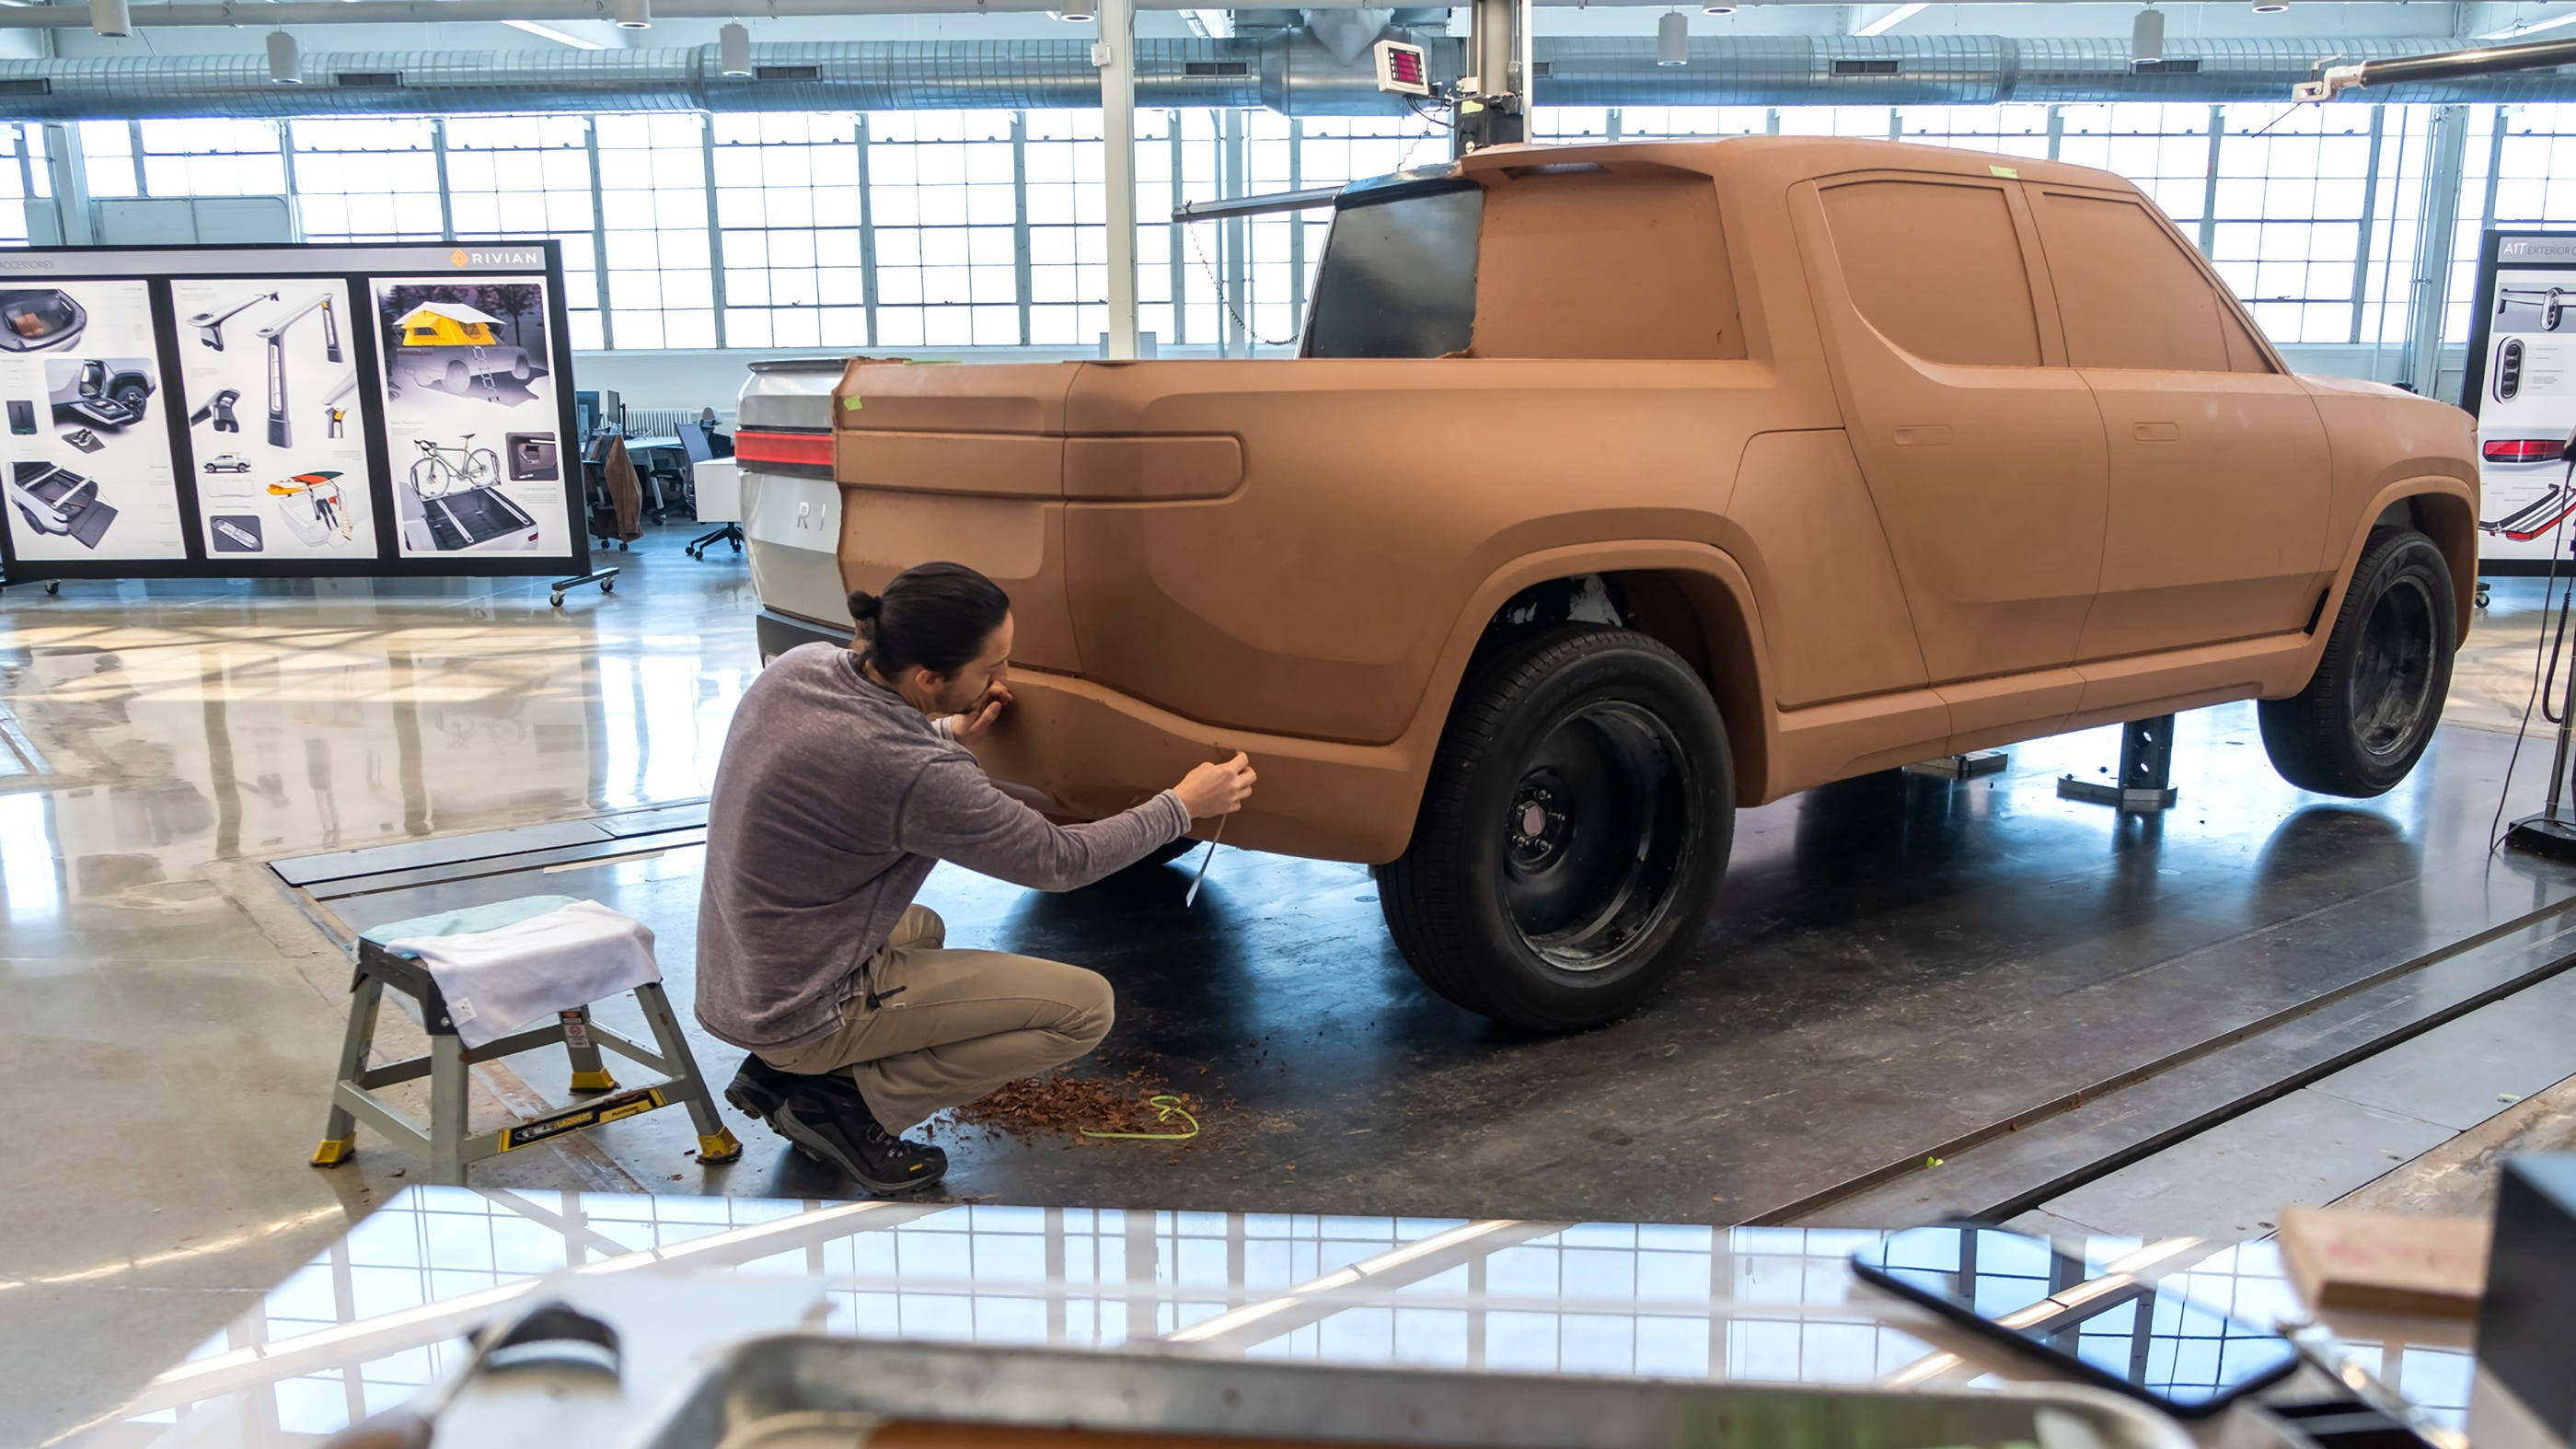 Amazon led $700 million in funding for electric-vehicle startup Rivian, but talks with GM reportedly broke down.